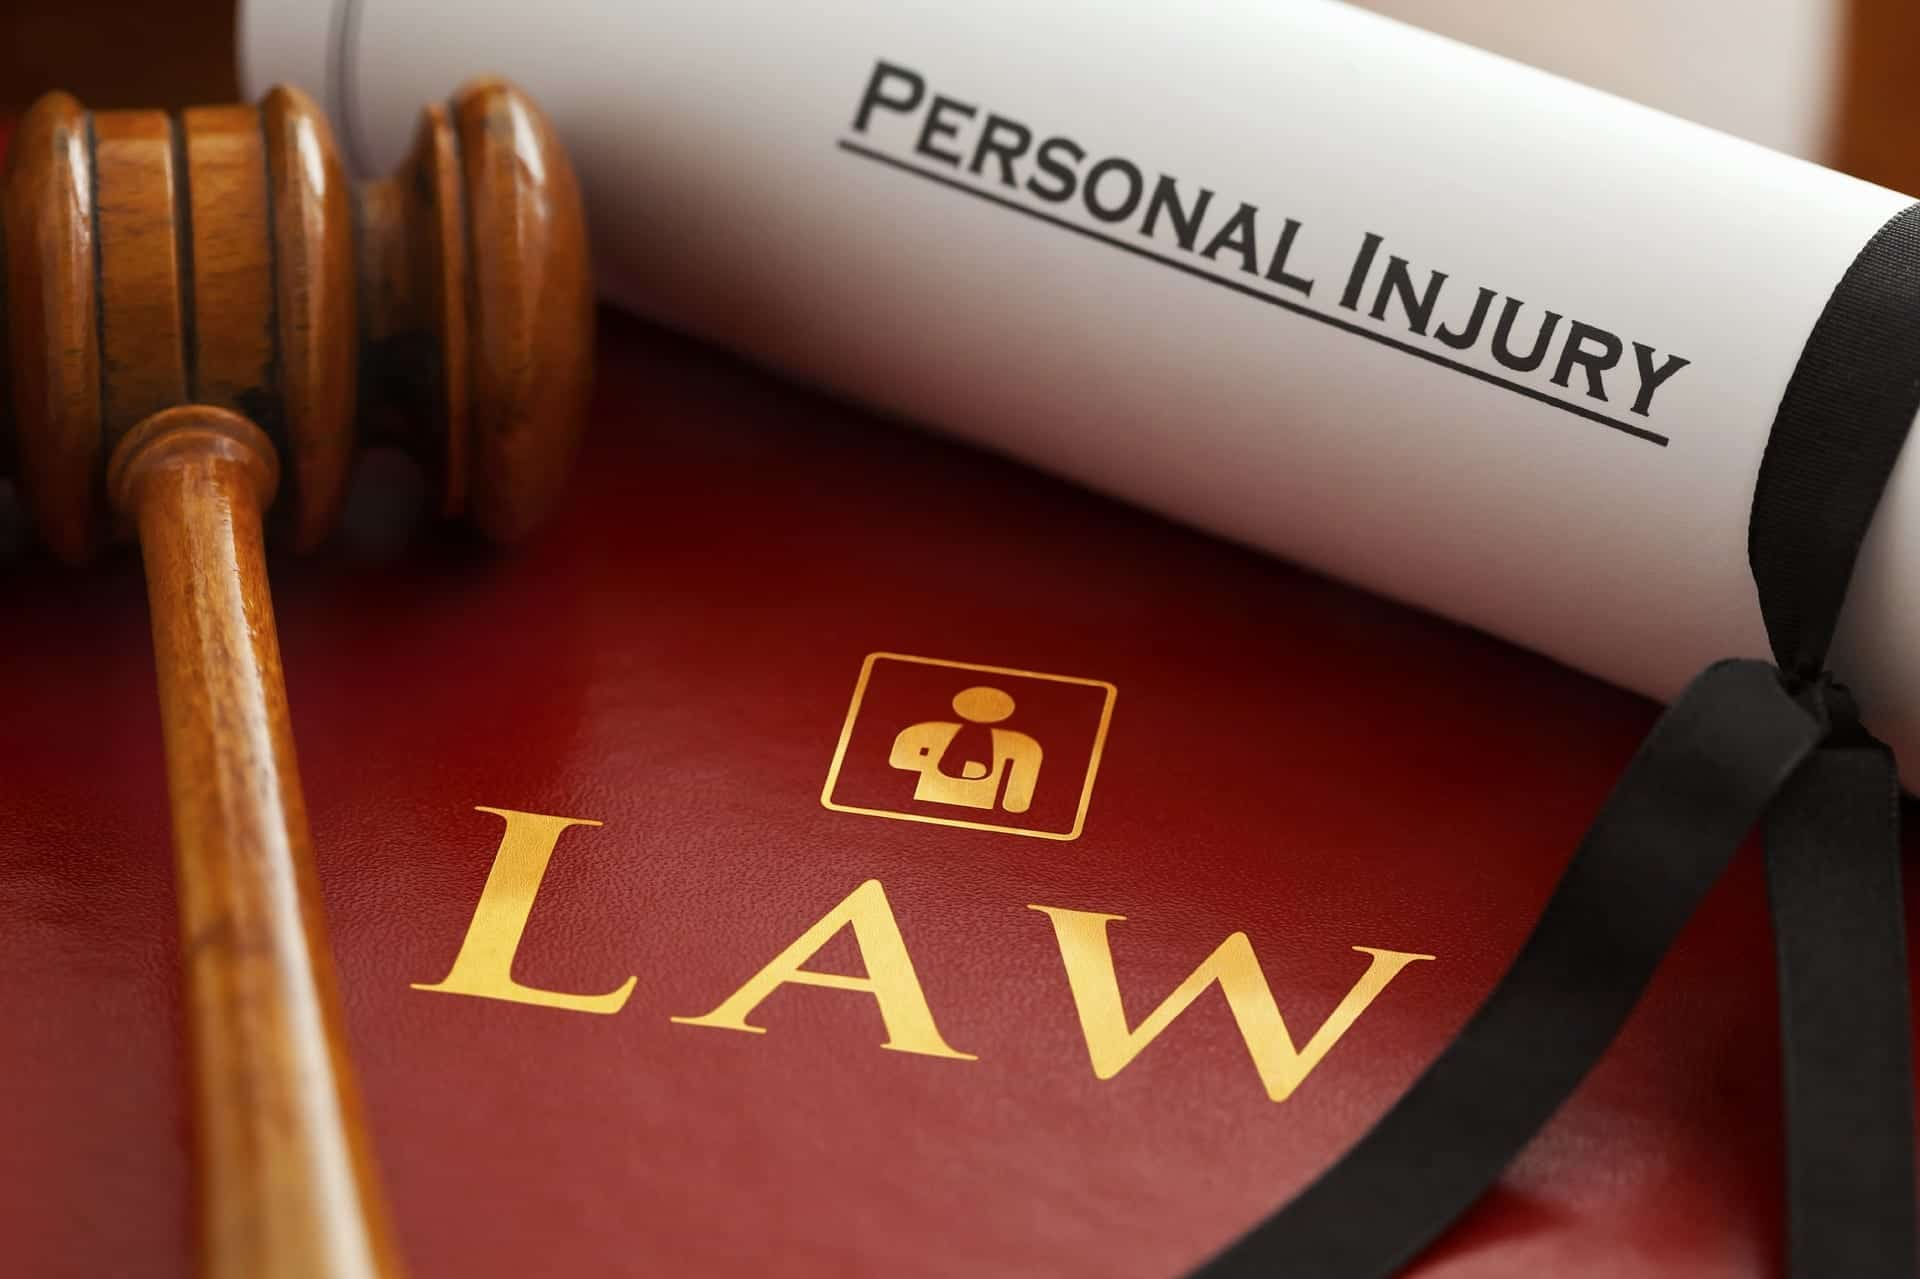 """Gavel and rolled paper with """"Personal Injury"""" on it sitting on top of dark red binder titled """"Law."""" Image by Claimaccident, via pixabay.com. No changes."""